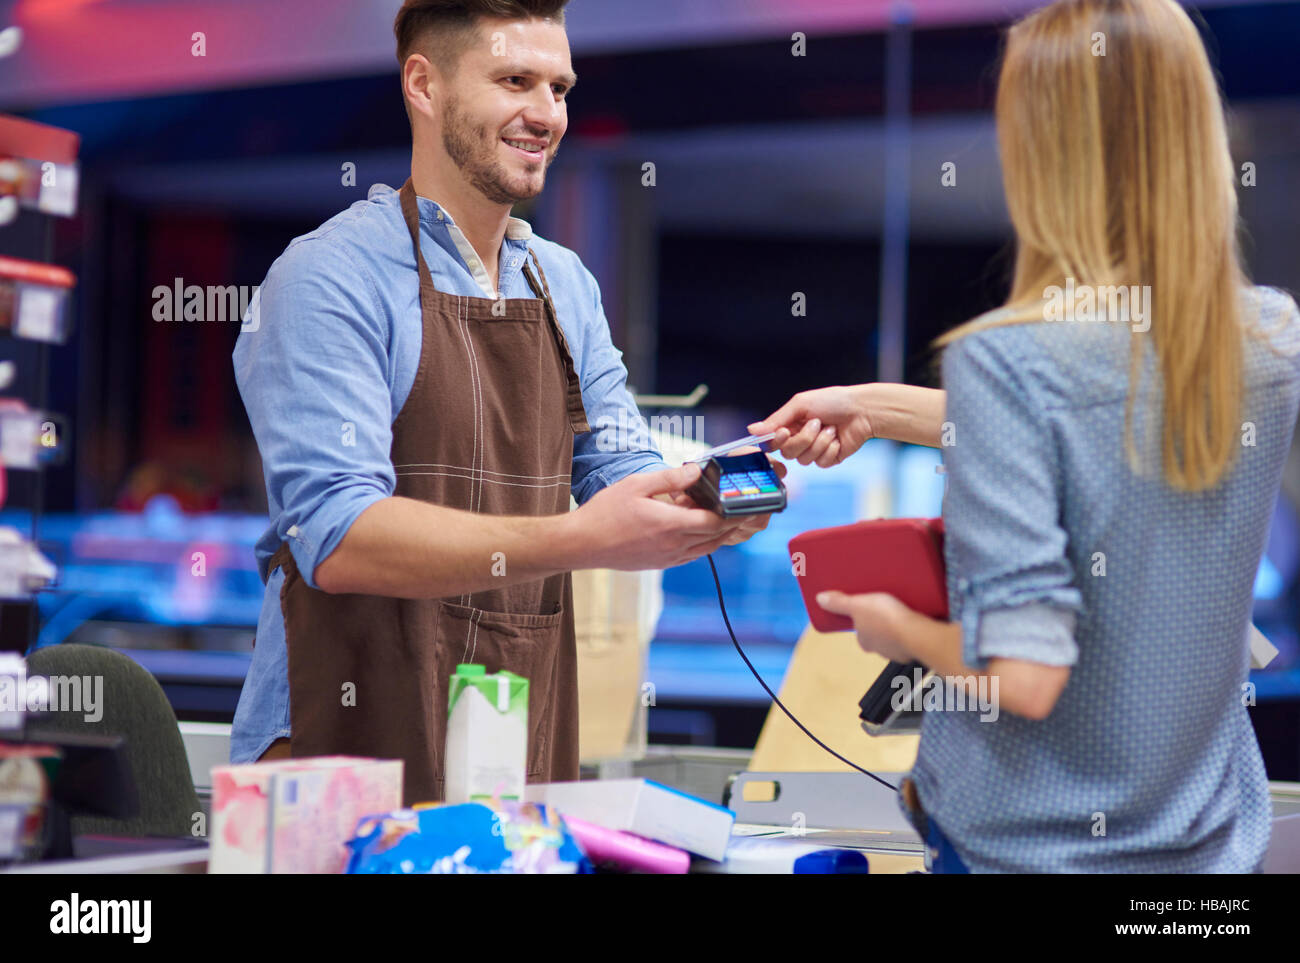 Contactless payment done by woman - Stock Image